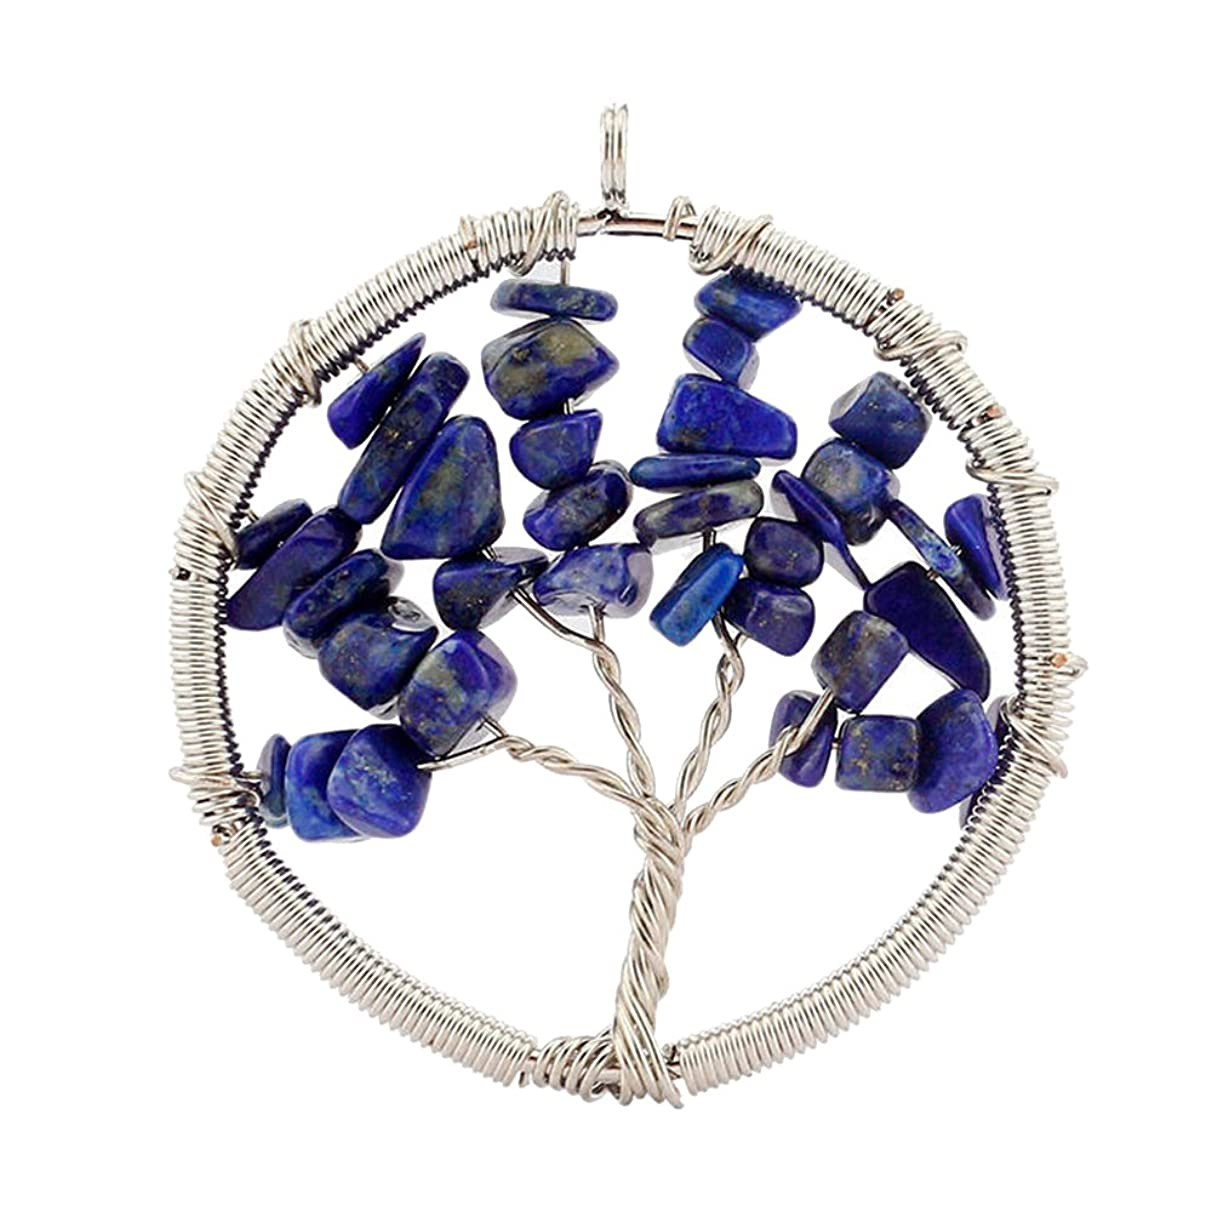 Happy Hours - Men's and Women's Handmade Round Tree Of Life Alloy Pendant with Charm Gravel / Unisex Natural Tumbled Gemstone Wire Wrapped Pendant Fit Necklace(Aventurine)